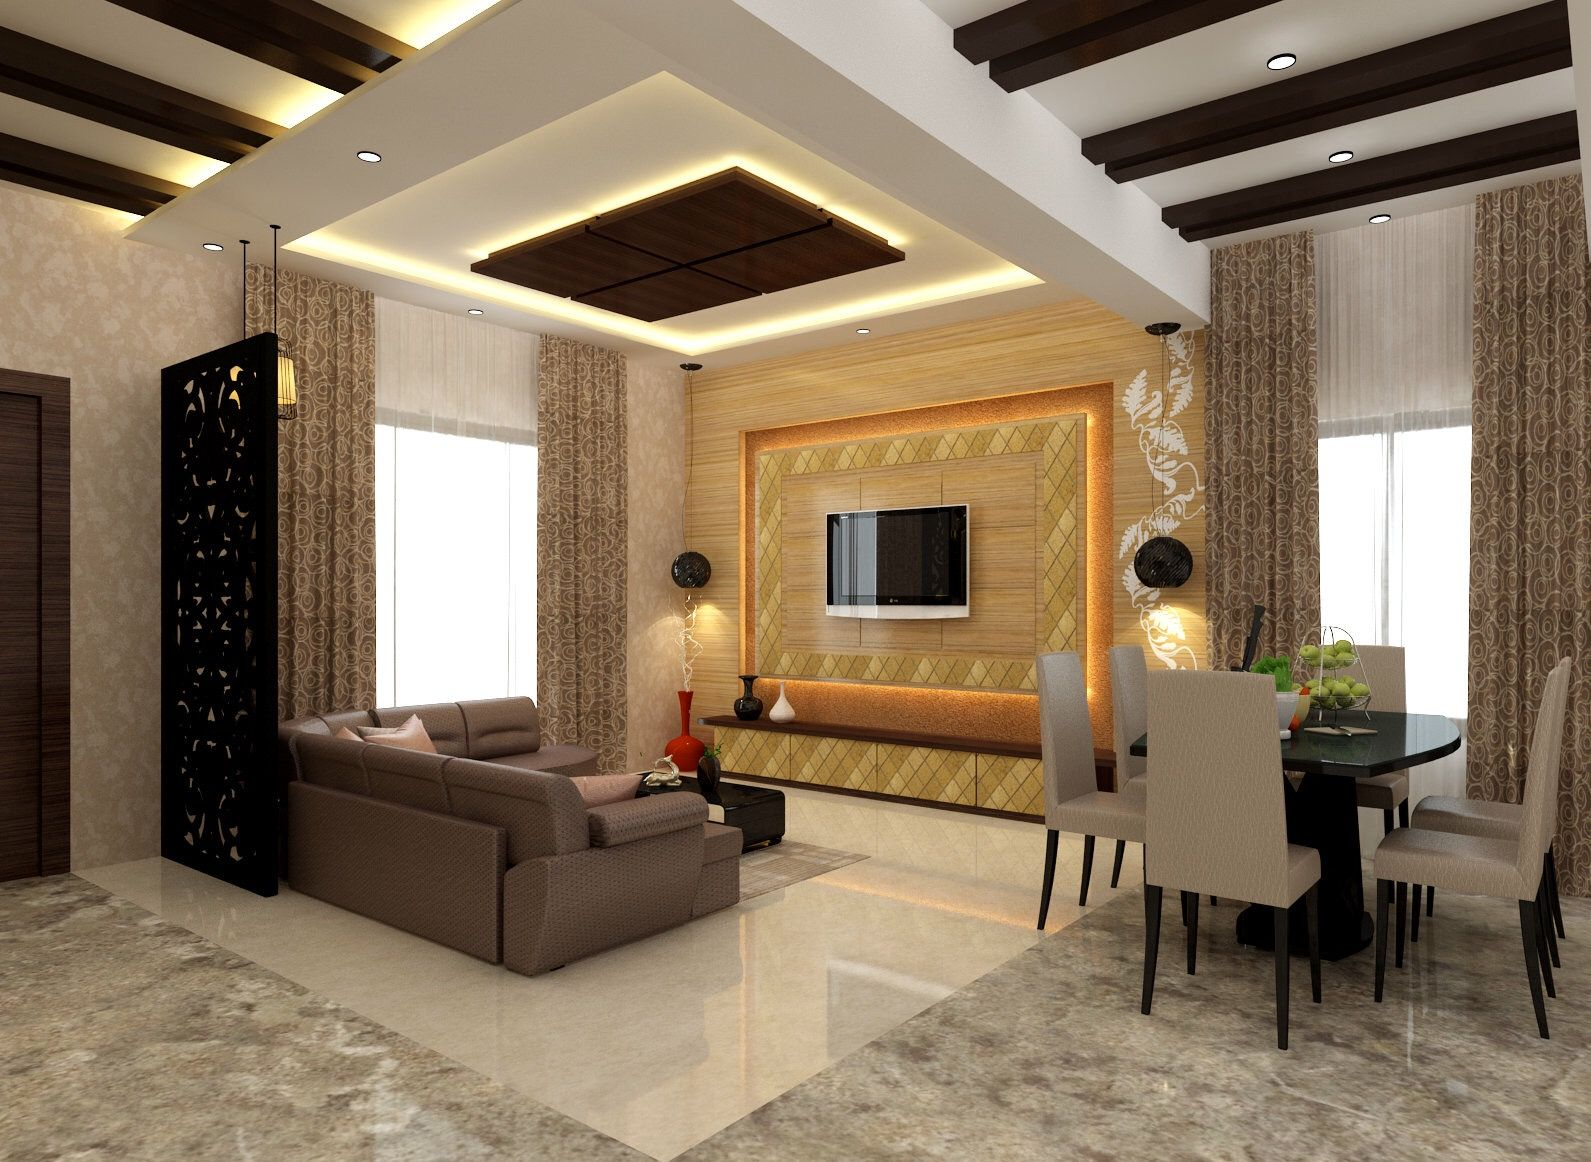 Living Room luxury style with dinning Area Ceiling